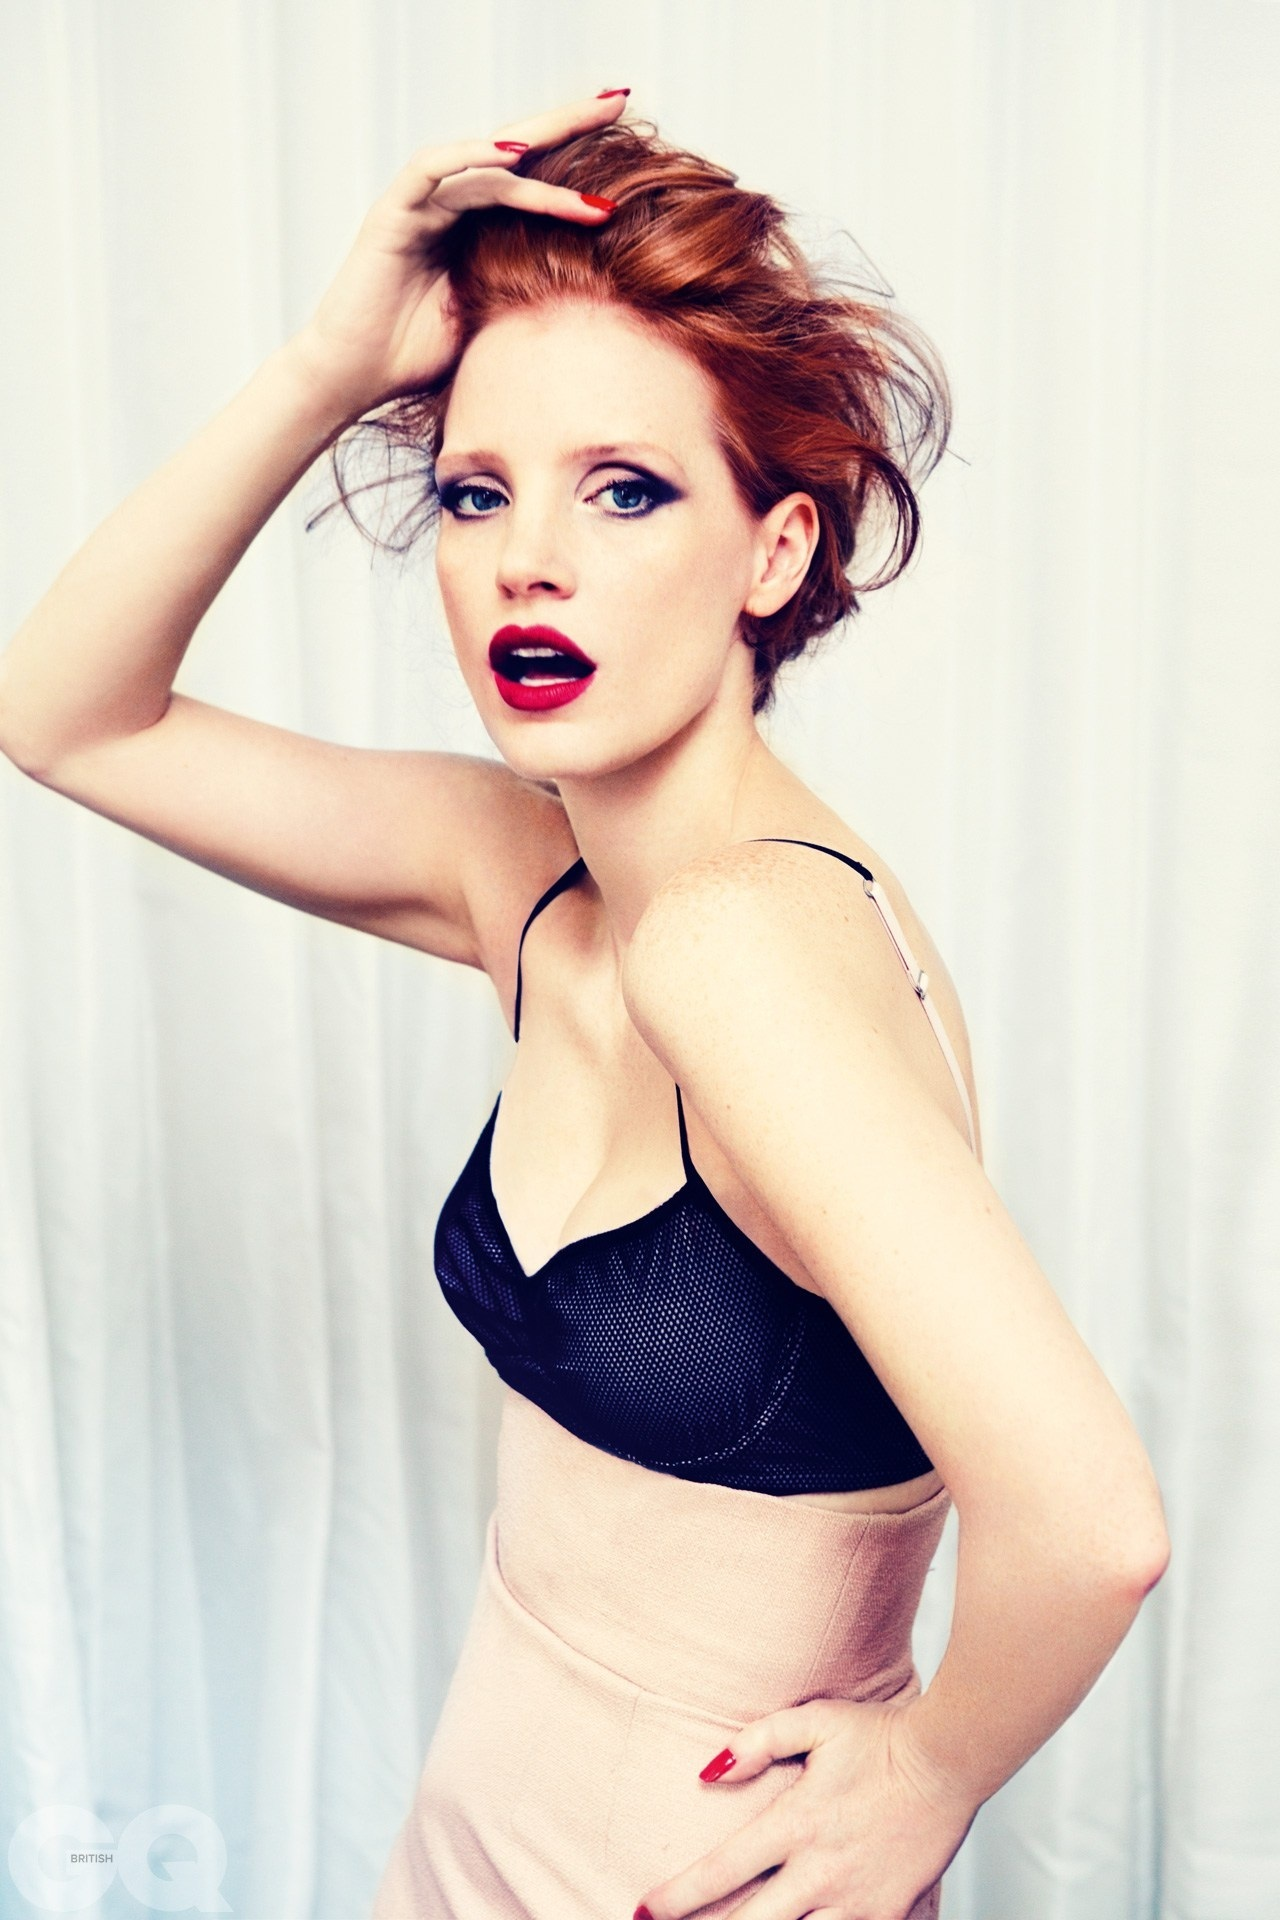 Jessica Chastain in Black Bra